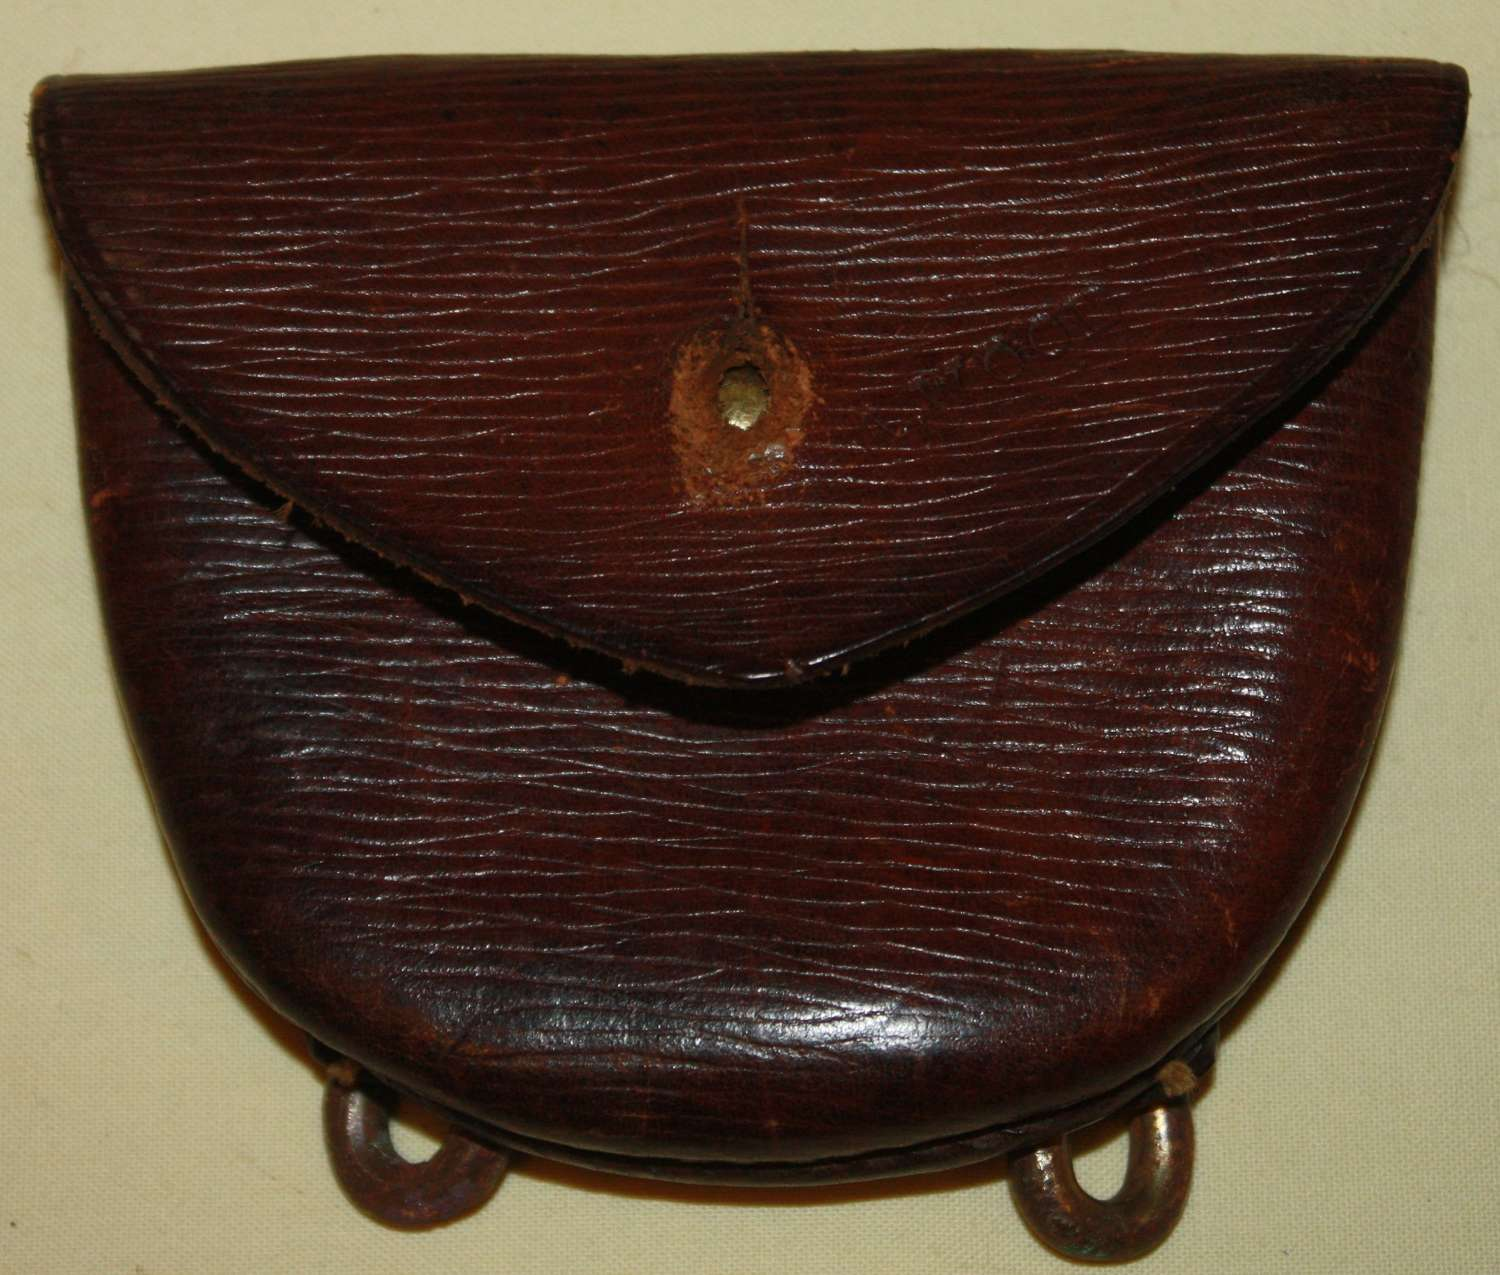 A GOOD USED WWI LEATHER PISTOL AMMO POUCH FOR THE 08 WEBBING